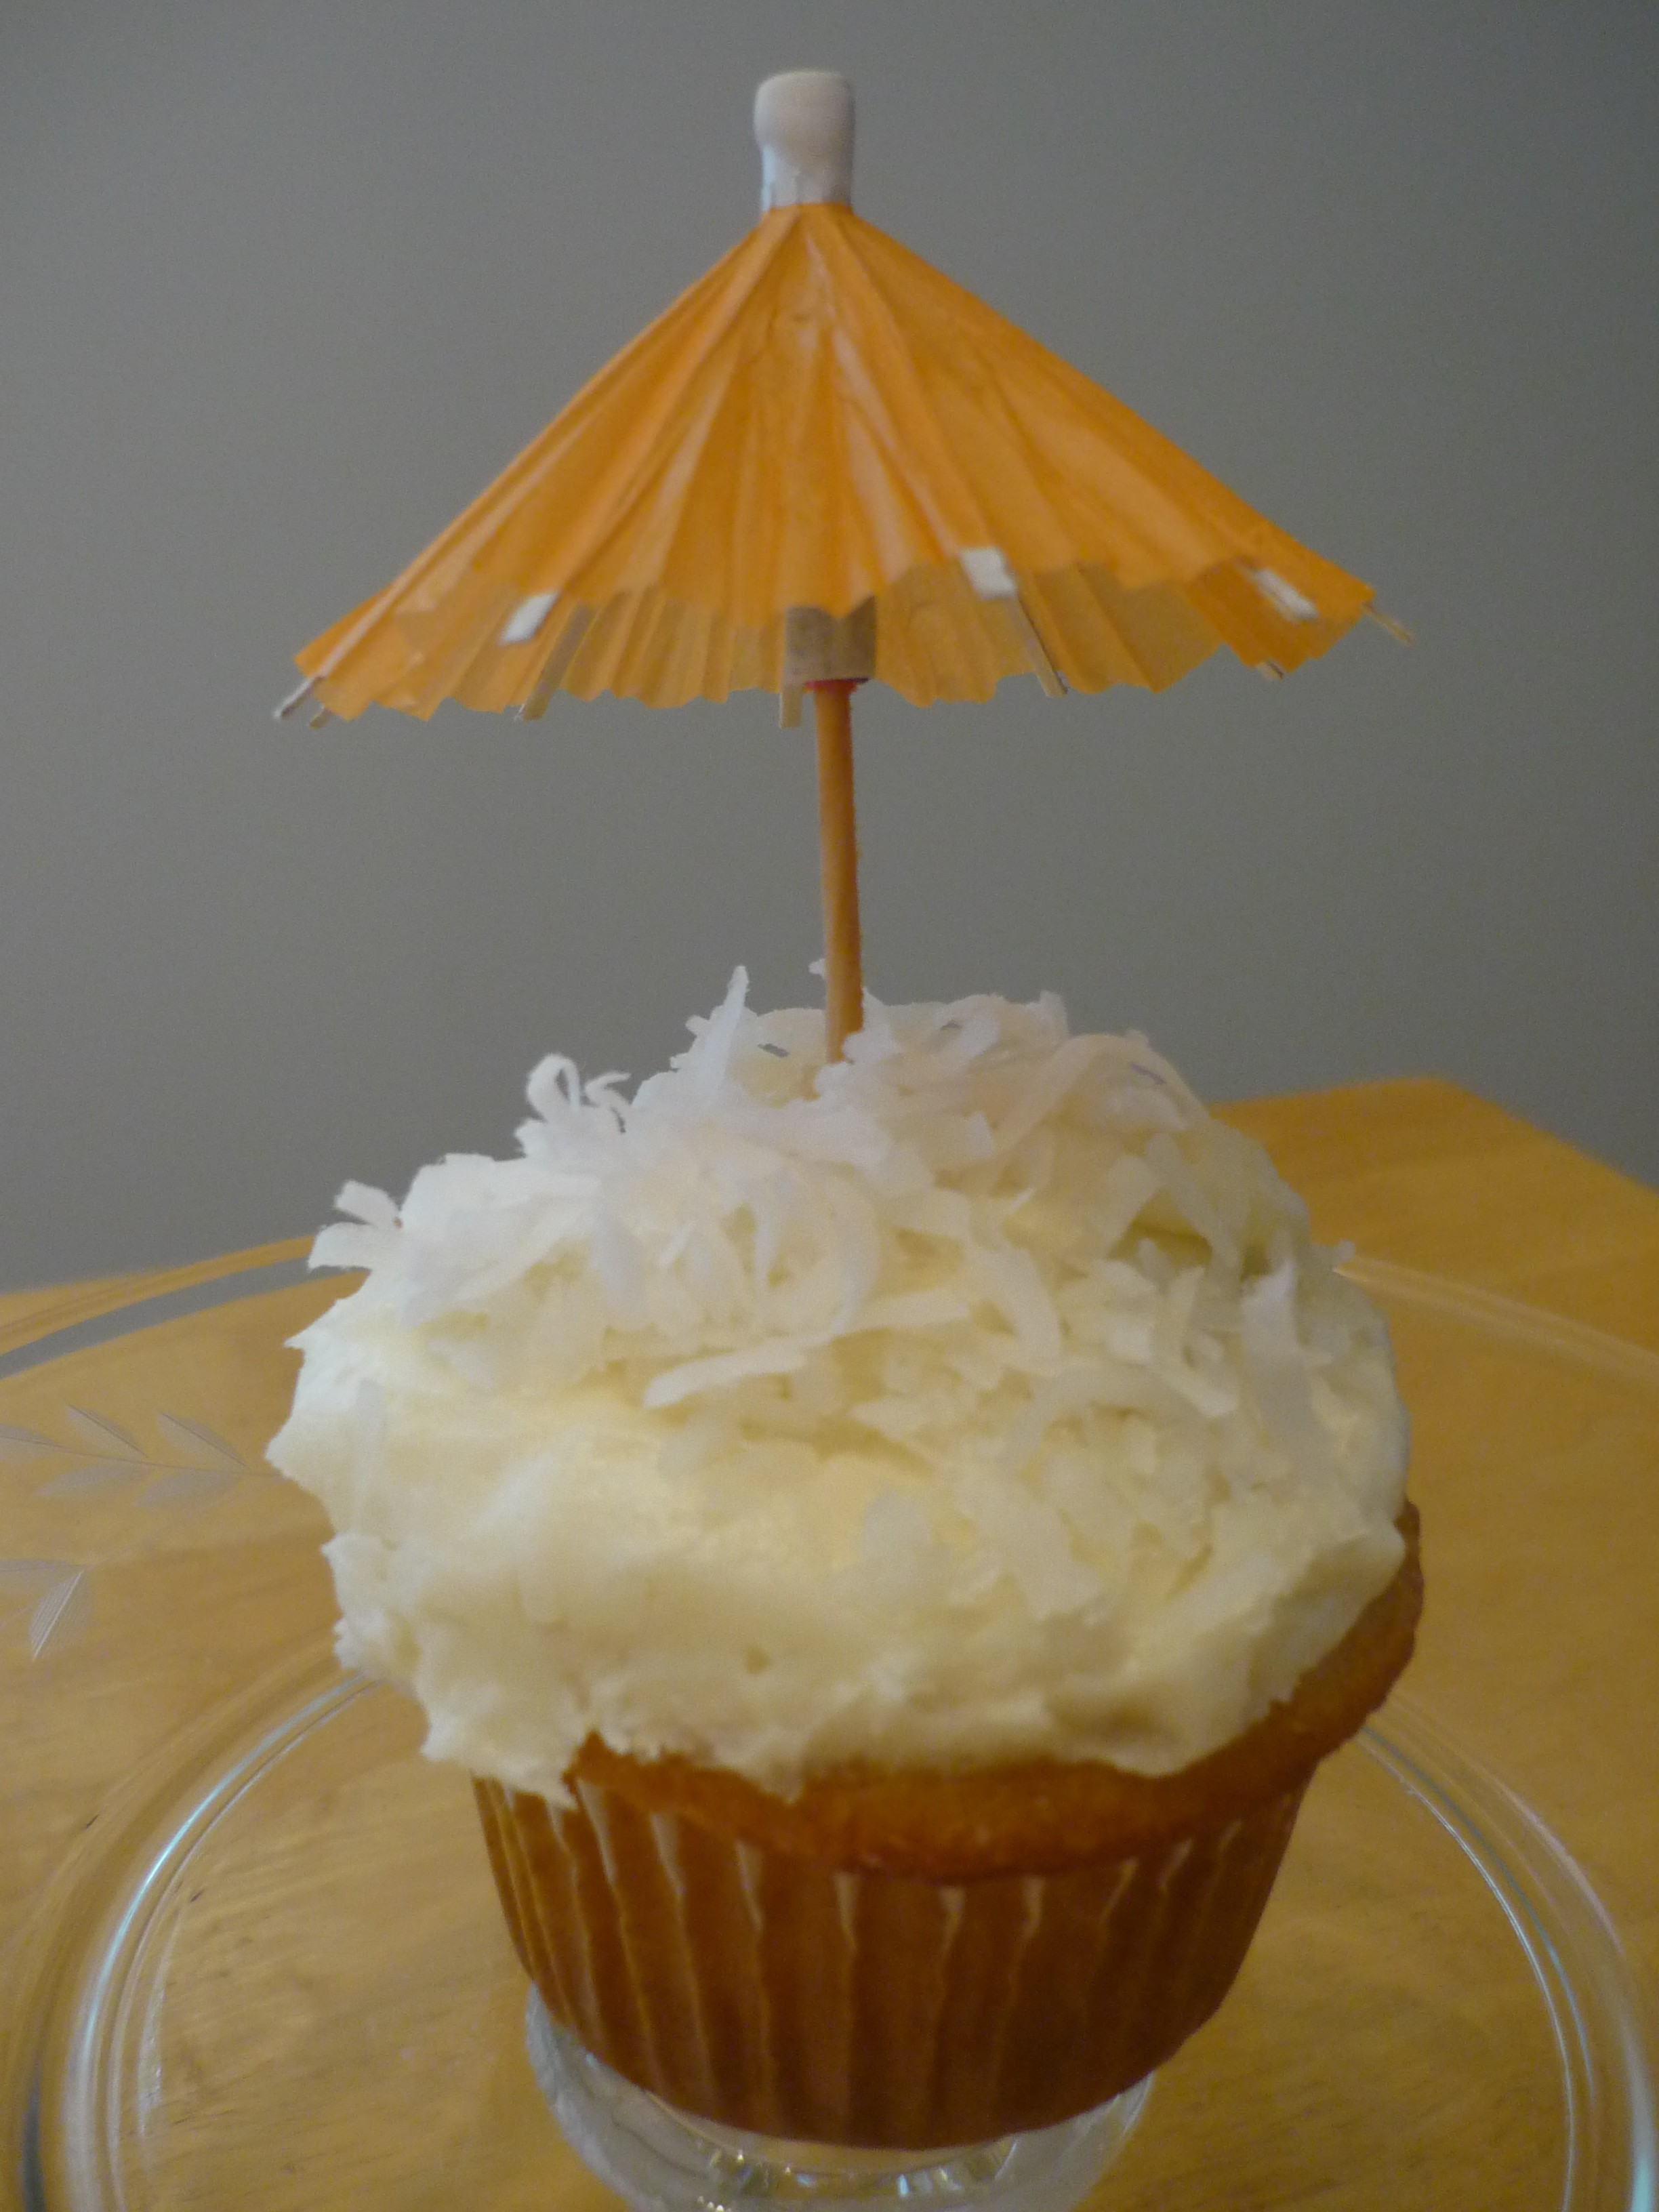 coconut-cupcake-with-coconut-rum-frosting-topped-with-shreded-coconut ...